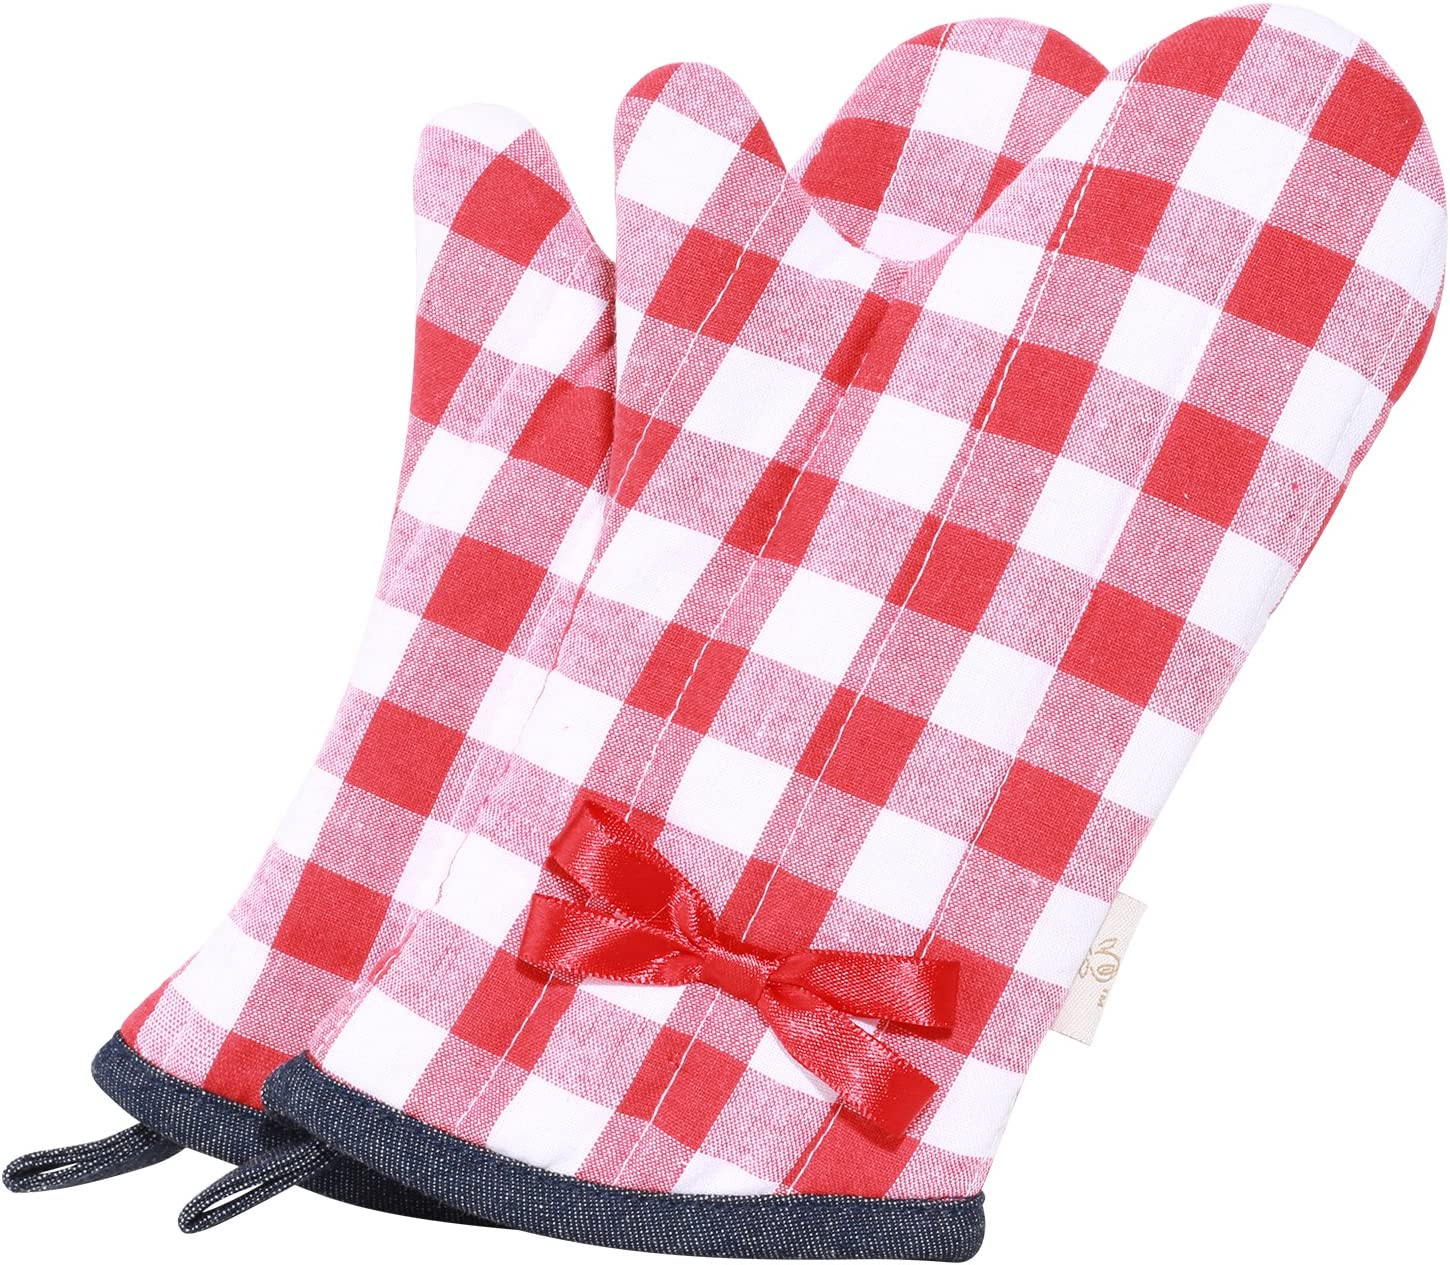 NEOVIVA Cotton Quilting Heat Resistant Oven Mitt for Child, Set of 2, Checked Red